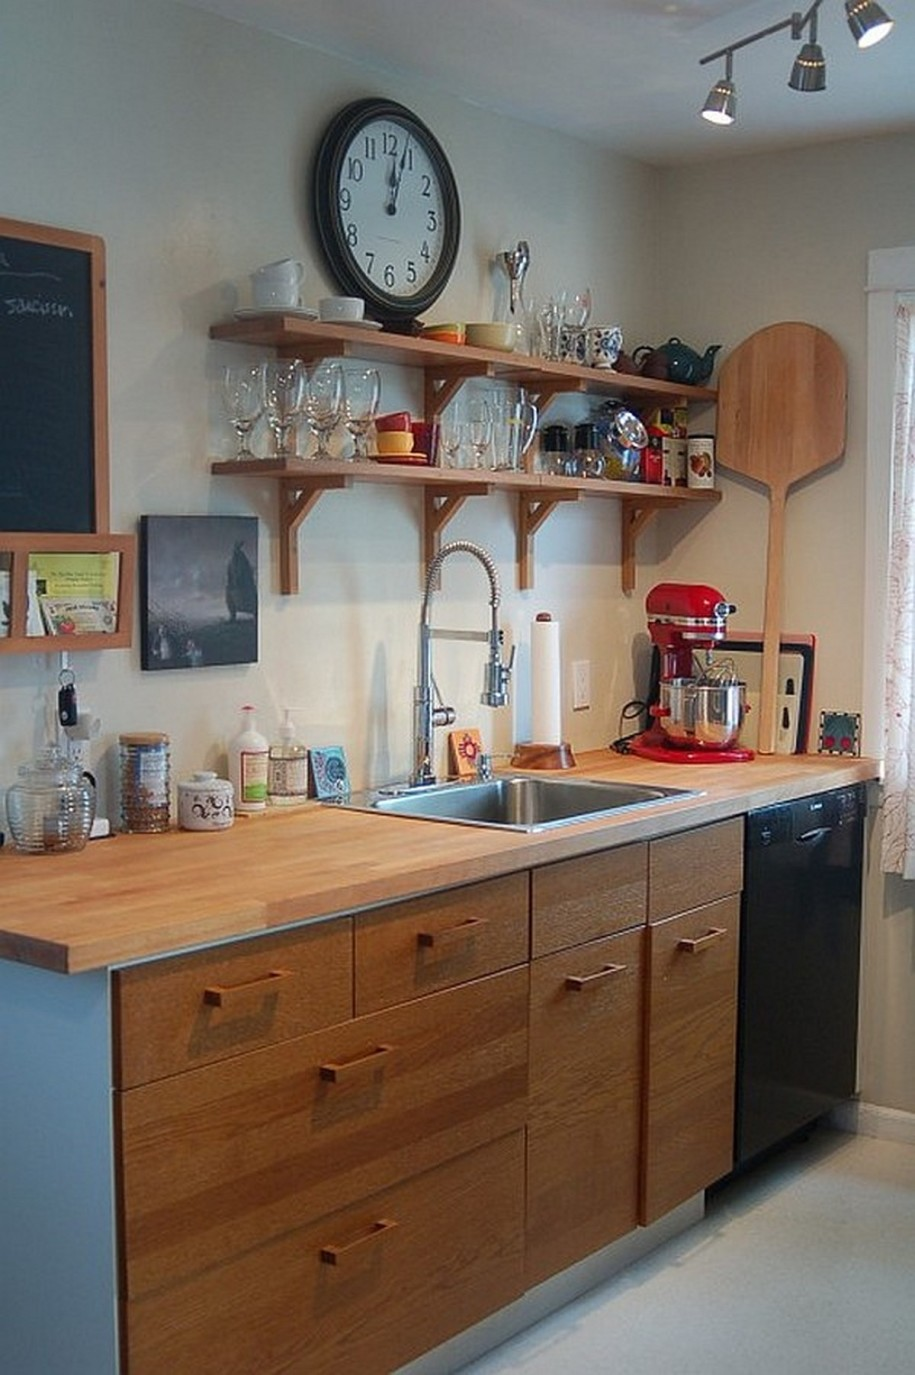 Creative Kitchen Counter-top Design Disguises Low Cost ... on Kitchen Counter Decor Modern  id=48521